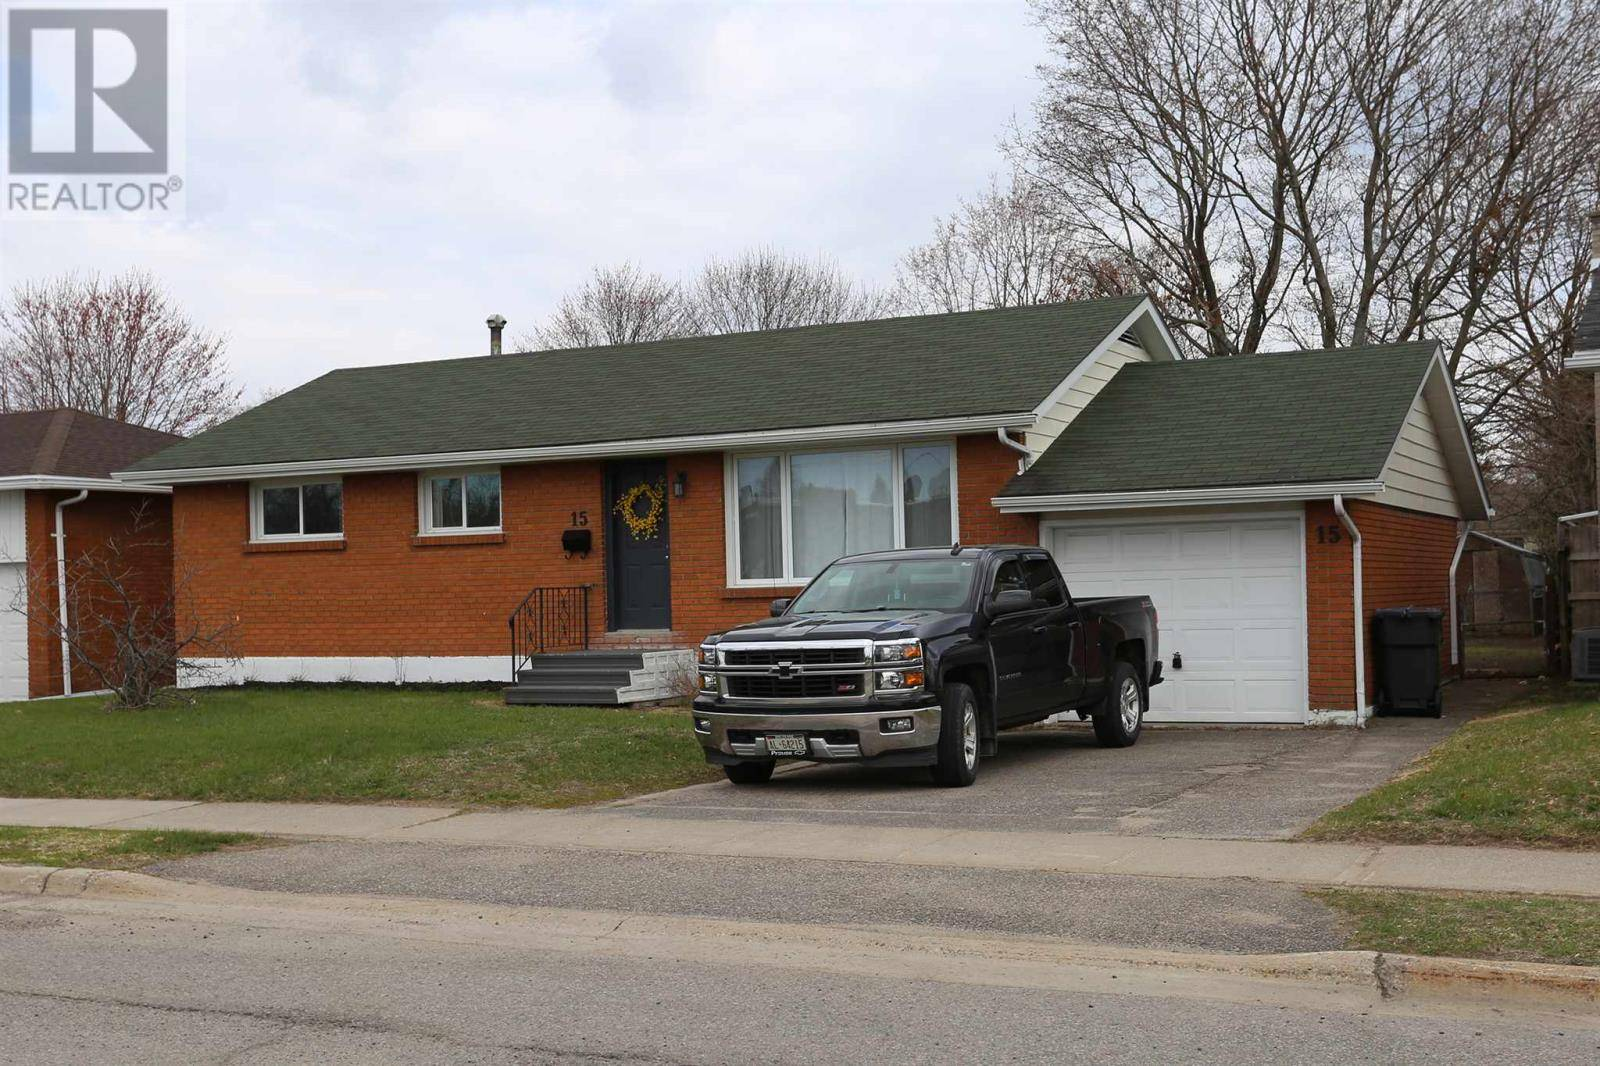 House for sale at 15 Chambers Ave Sault Ste. Marie Ontario - MLS: SM127642